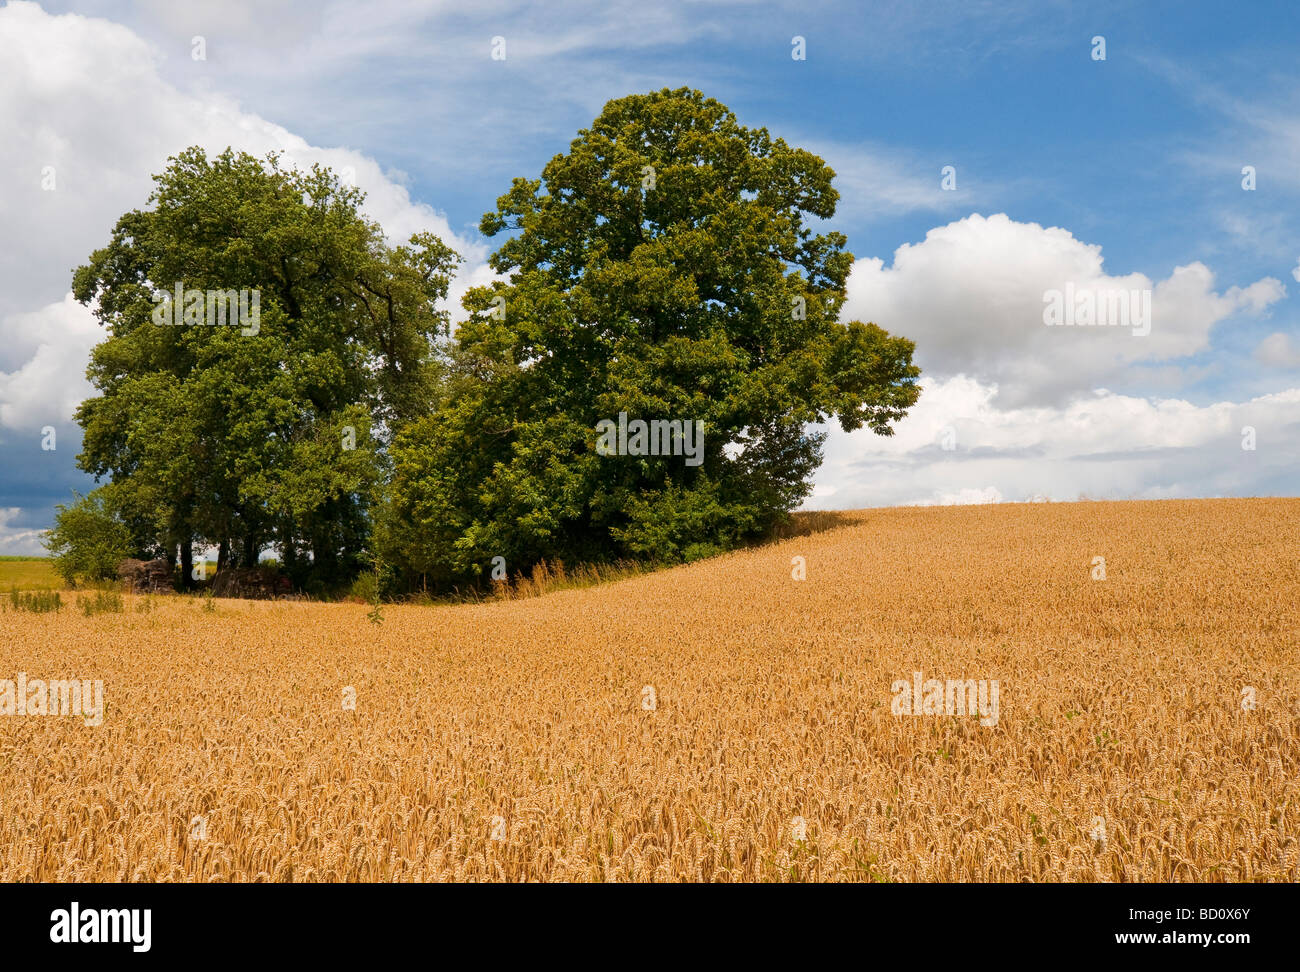 Oak and Sweet Chestnut trees in middle of cornfield - sud-Touraine, France. - Stock Image